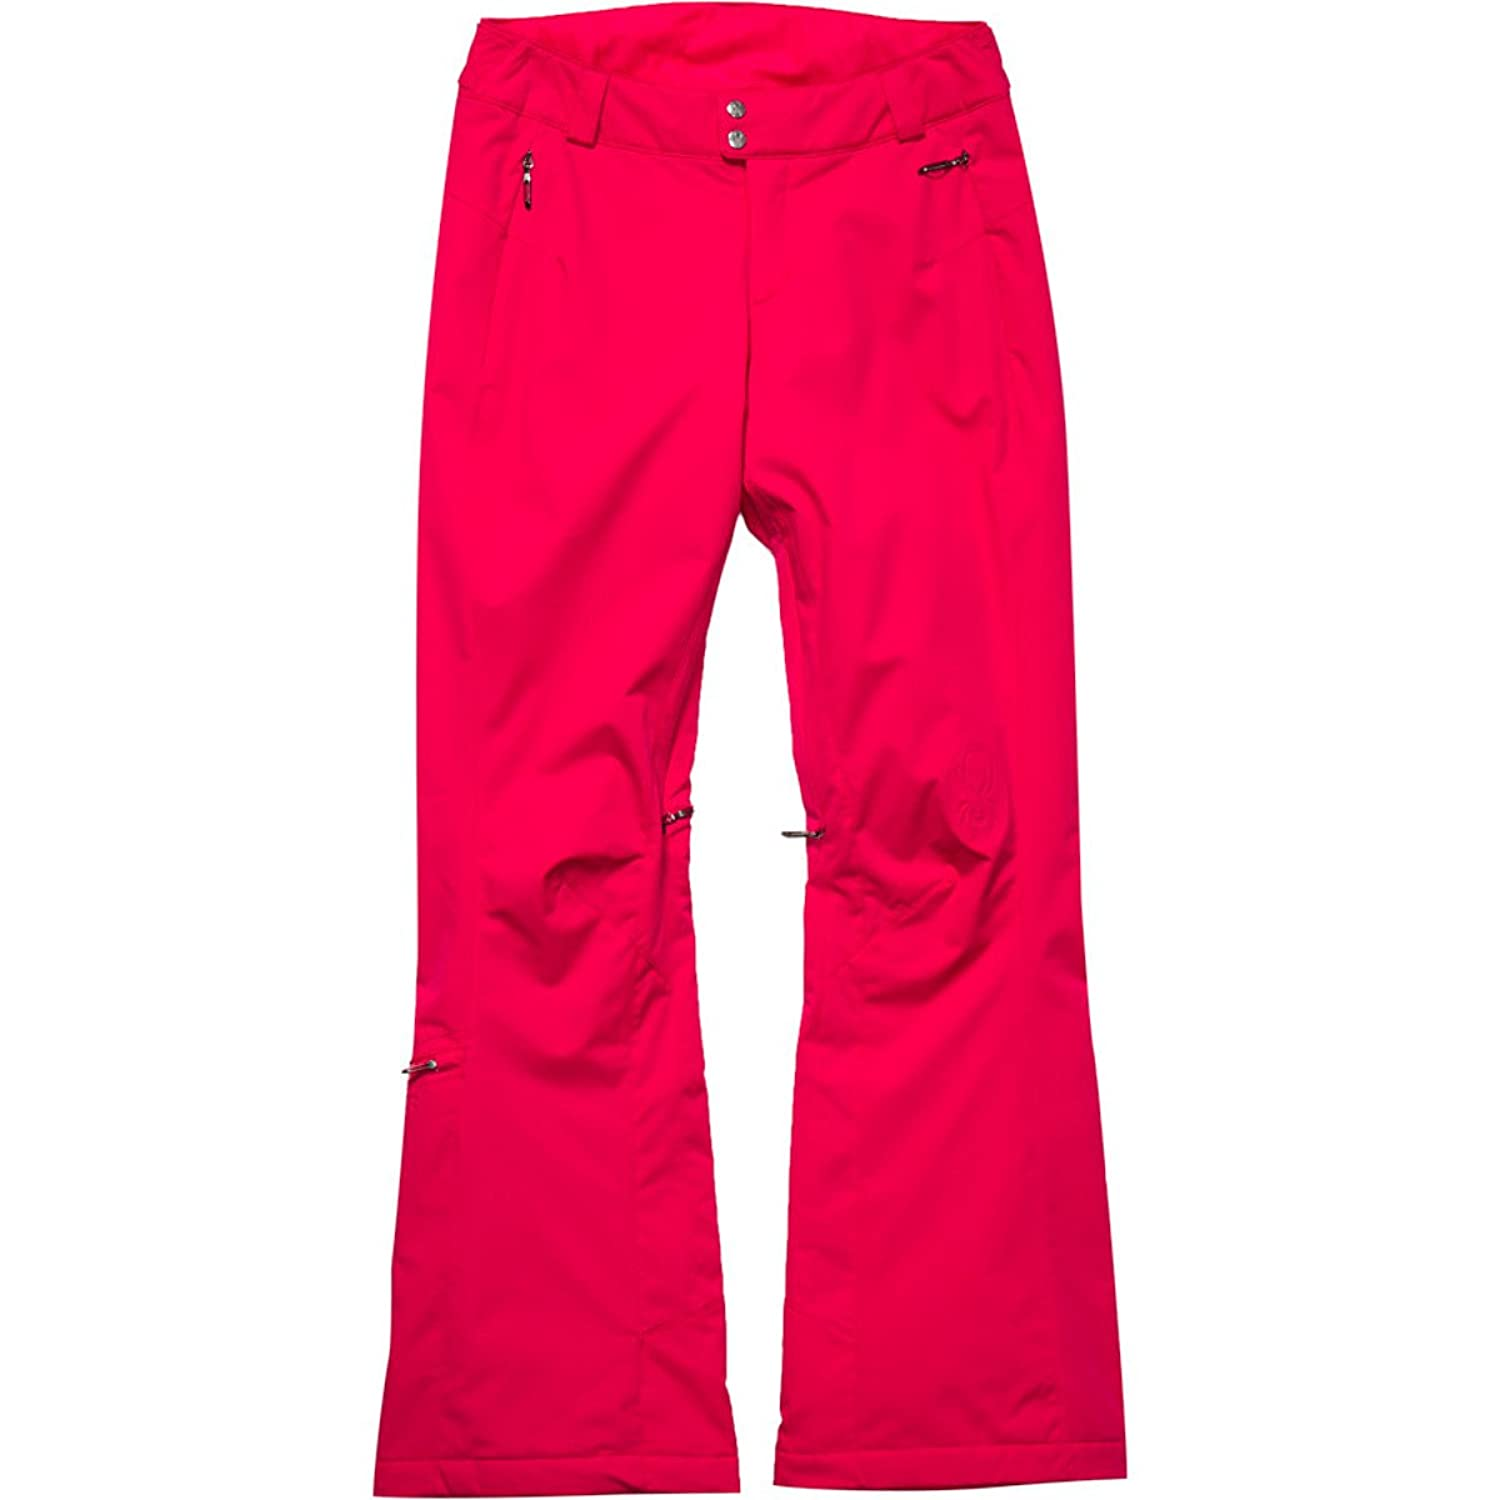 Spyder Damen Skihose Traveler Tailored Fit Pink #SP258A